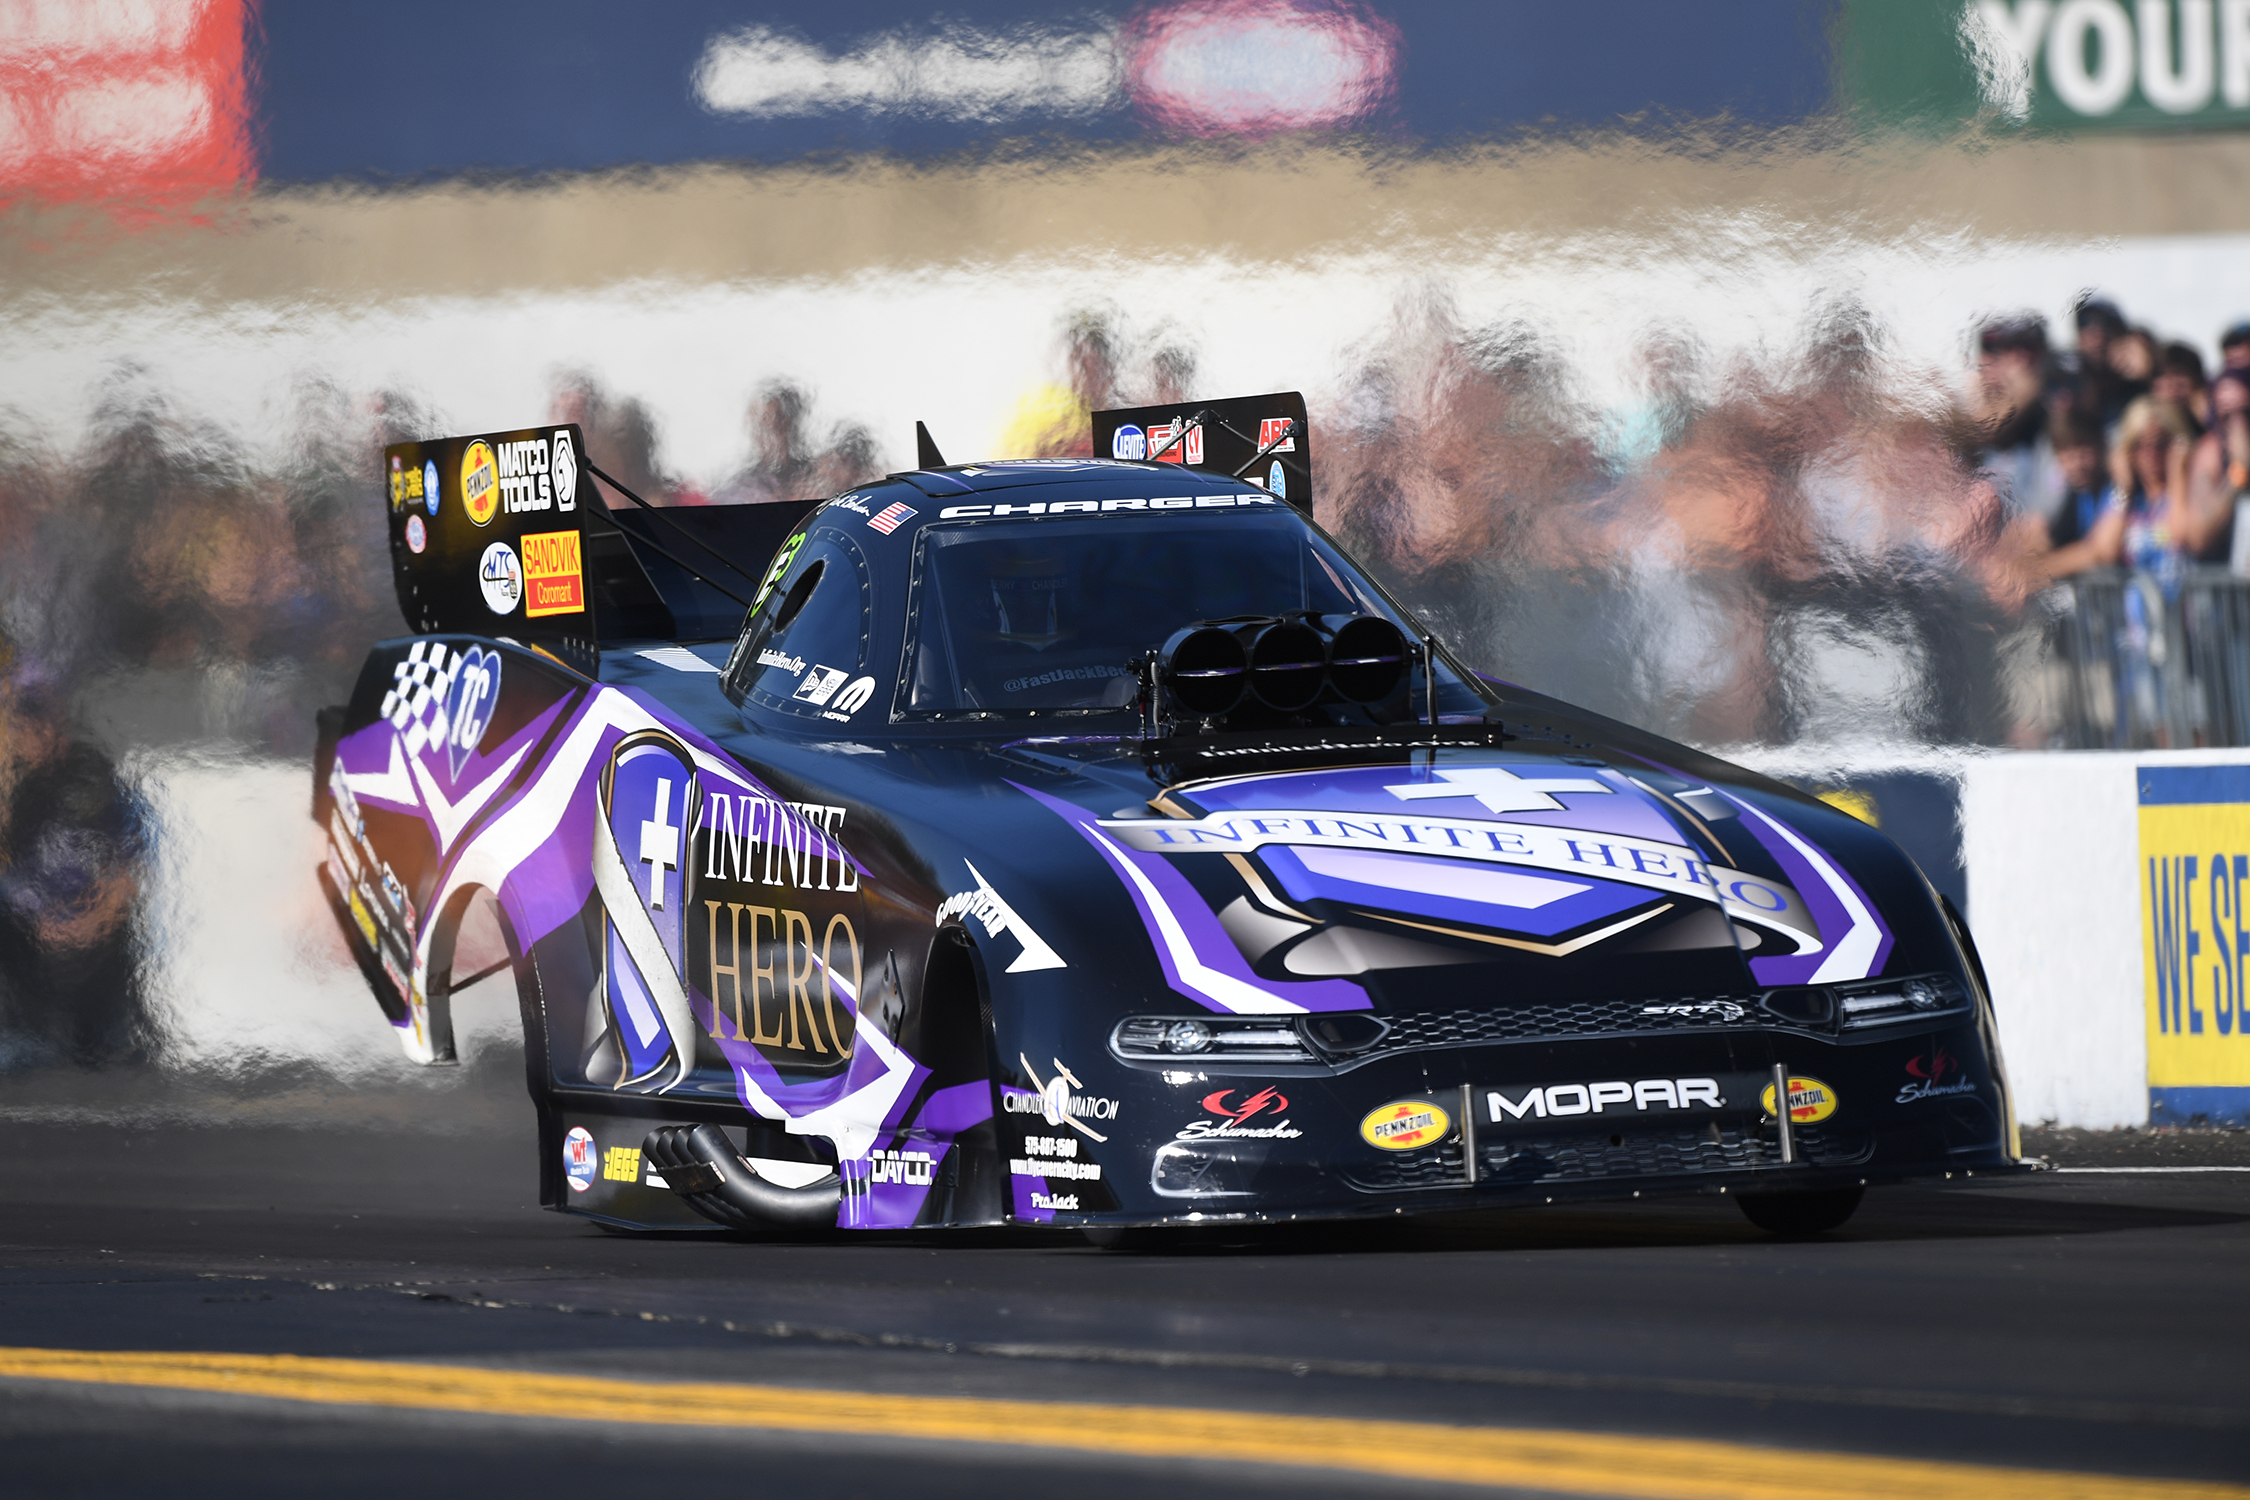 Infinite Hero Foundation Funny Car pilot Jack Beckman racing on Sunday at the Mopar Express Lane NHRA Nationals presented by Pennzoil